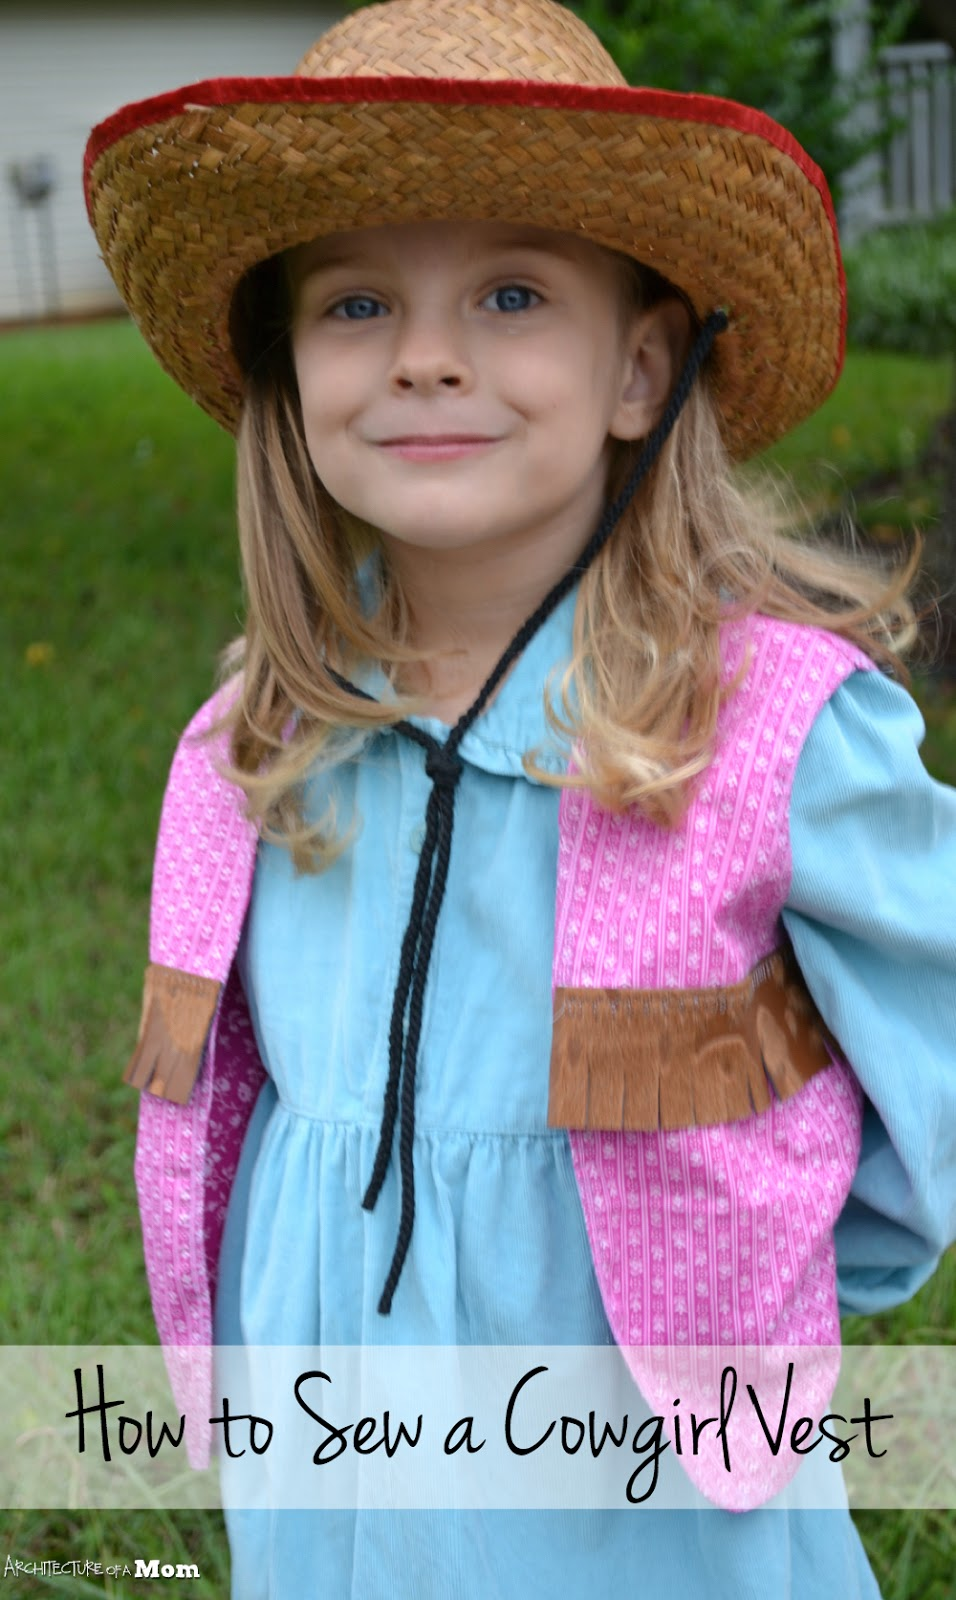 architecture of a mom: easy cowgirl vest